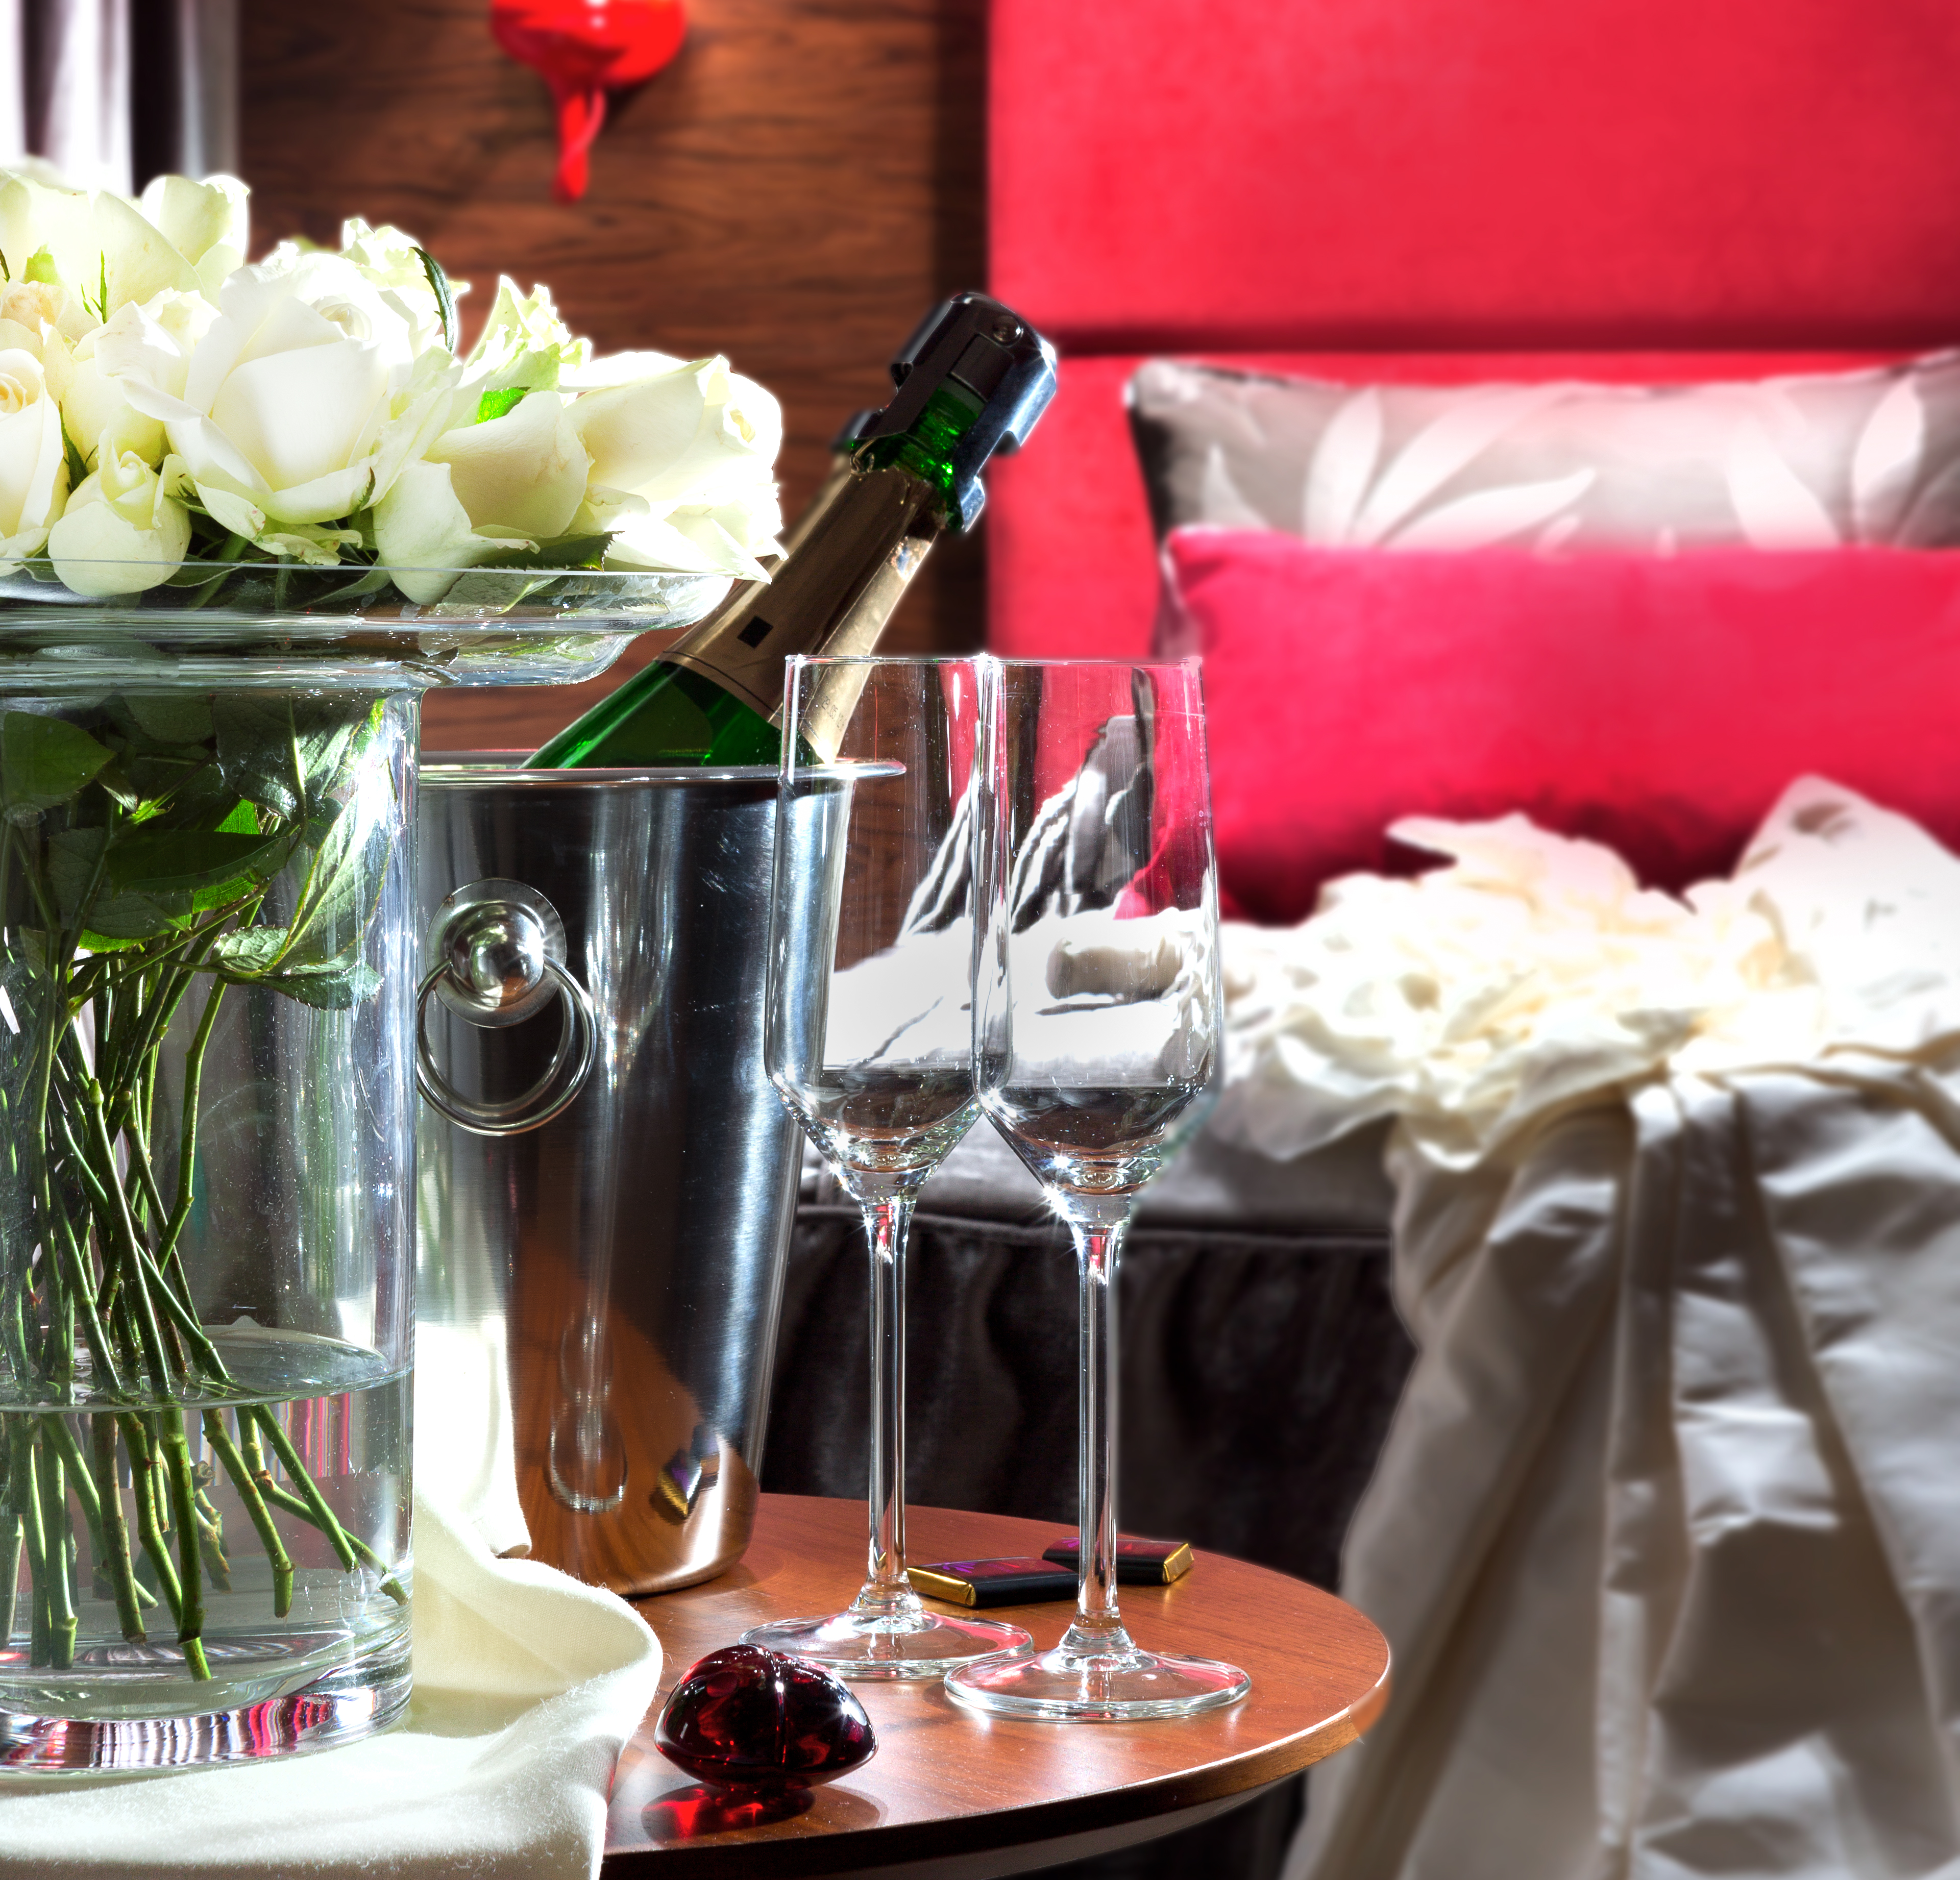 what to bring to a hotel for a romantic night